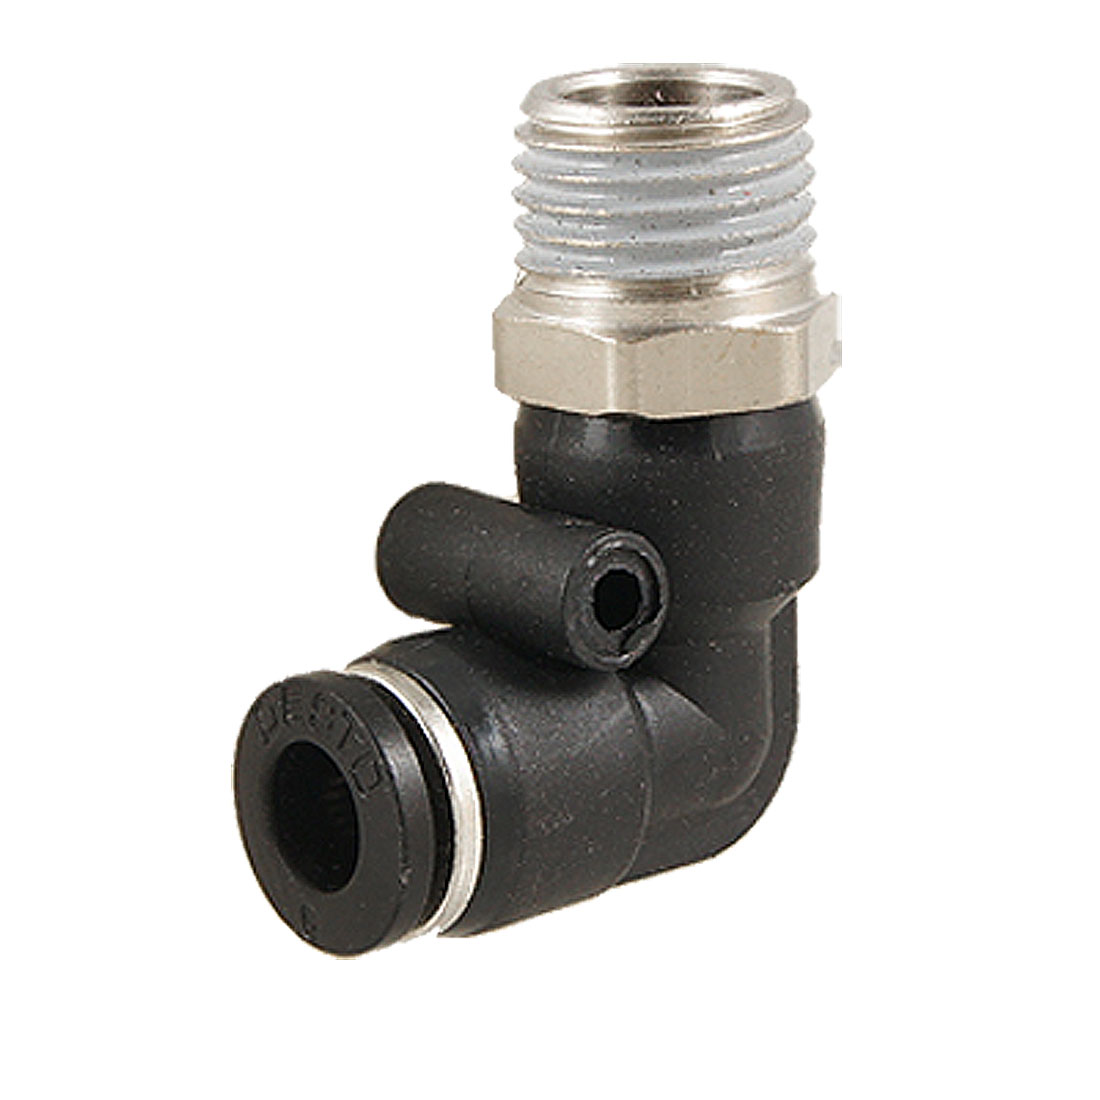 "6mm Push In One Touch Connector 1/2"" Thread Pneumatic Quick Fittings"